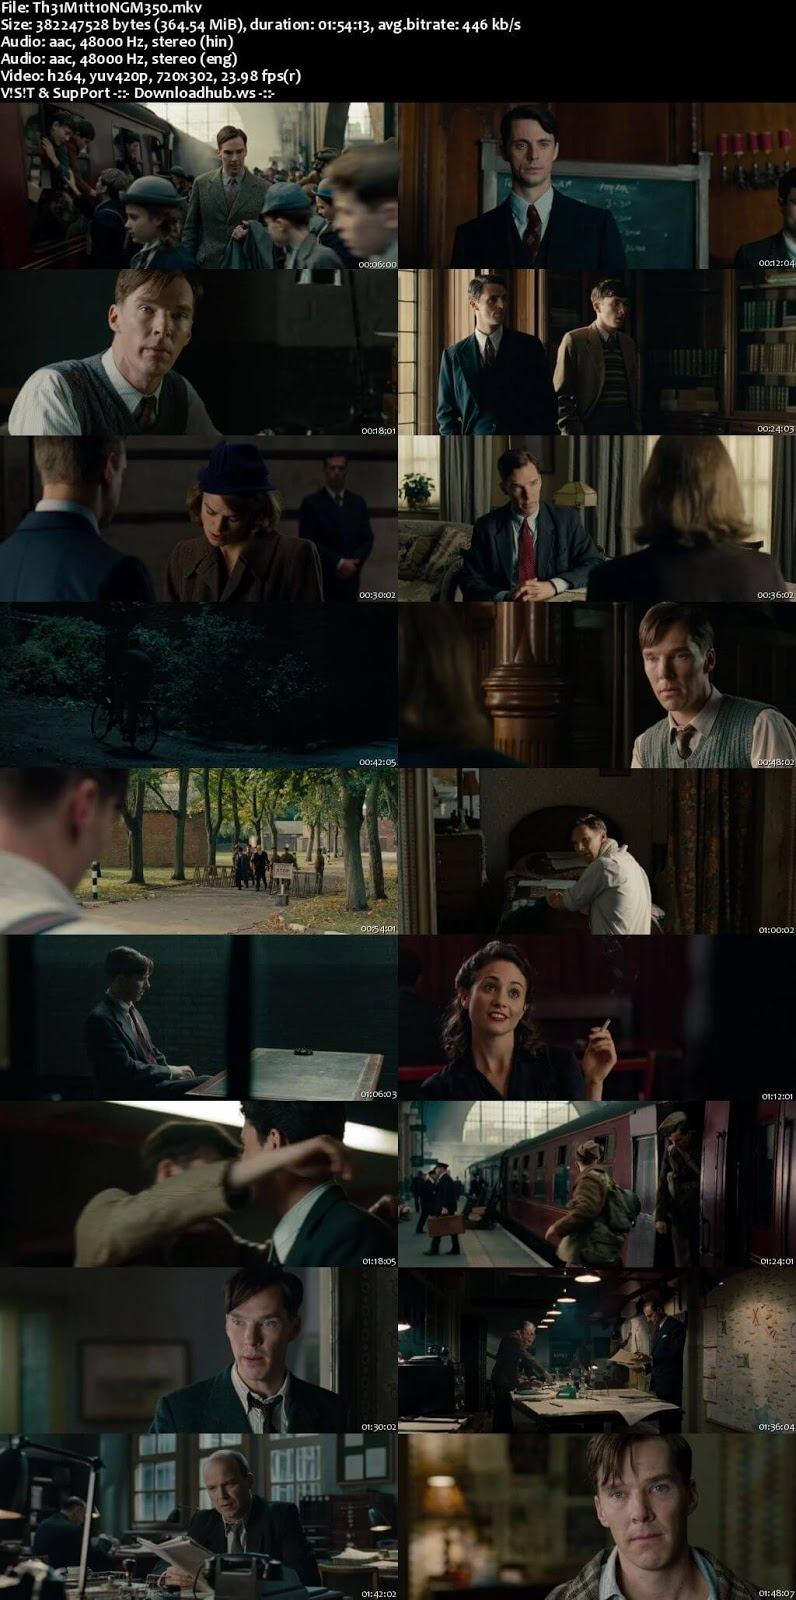 The Imitation Game 2014 Hindi Dual Audio 480p BluRay Free Download